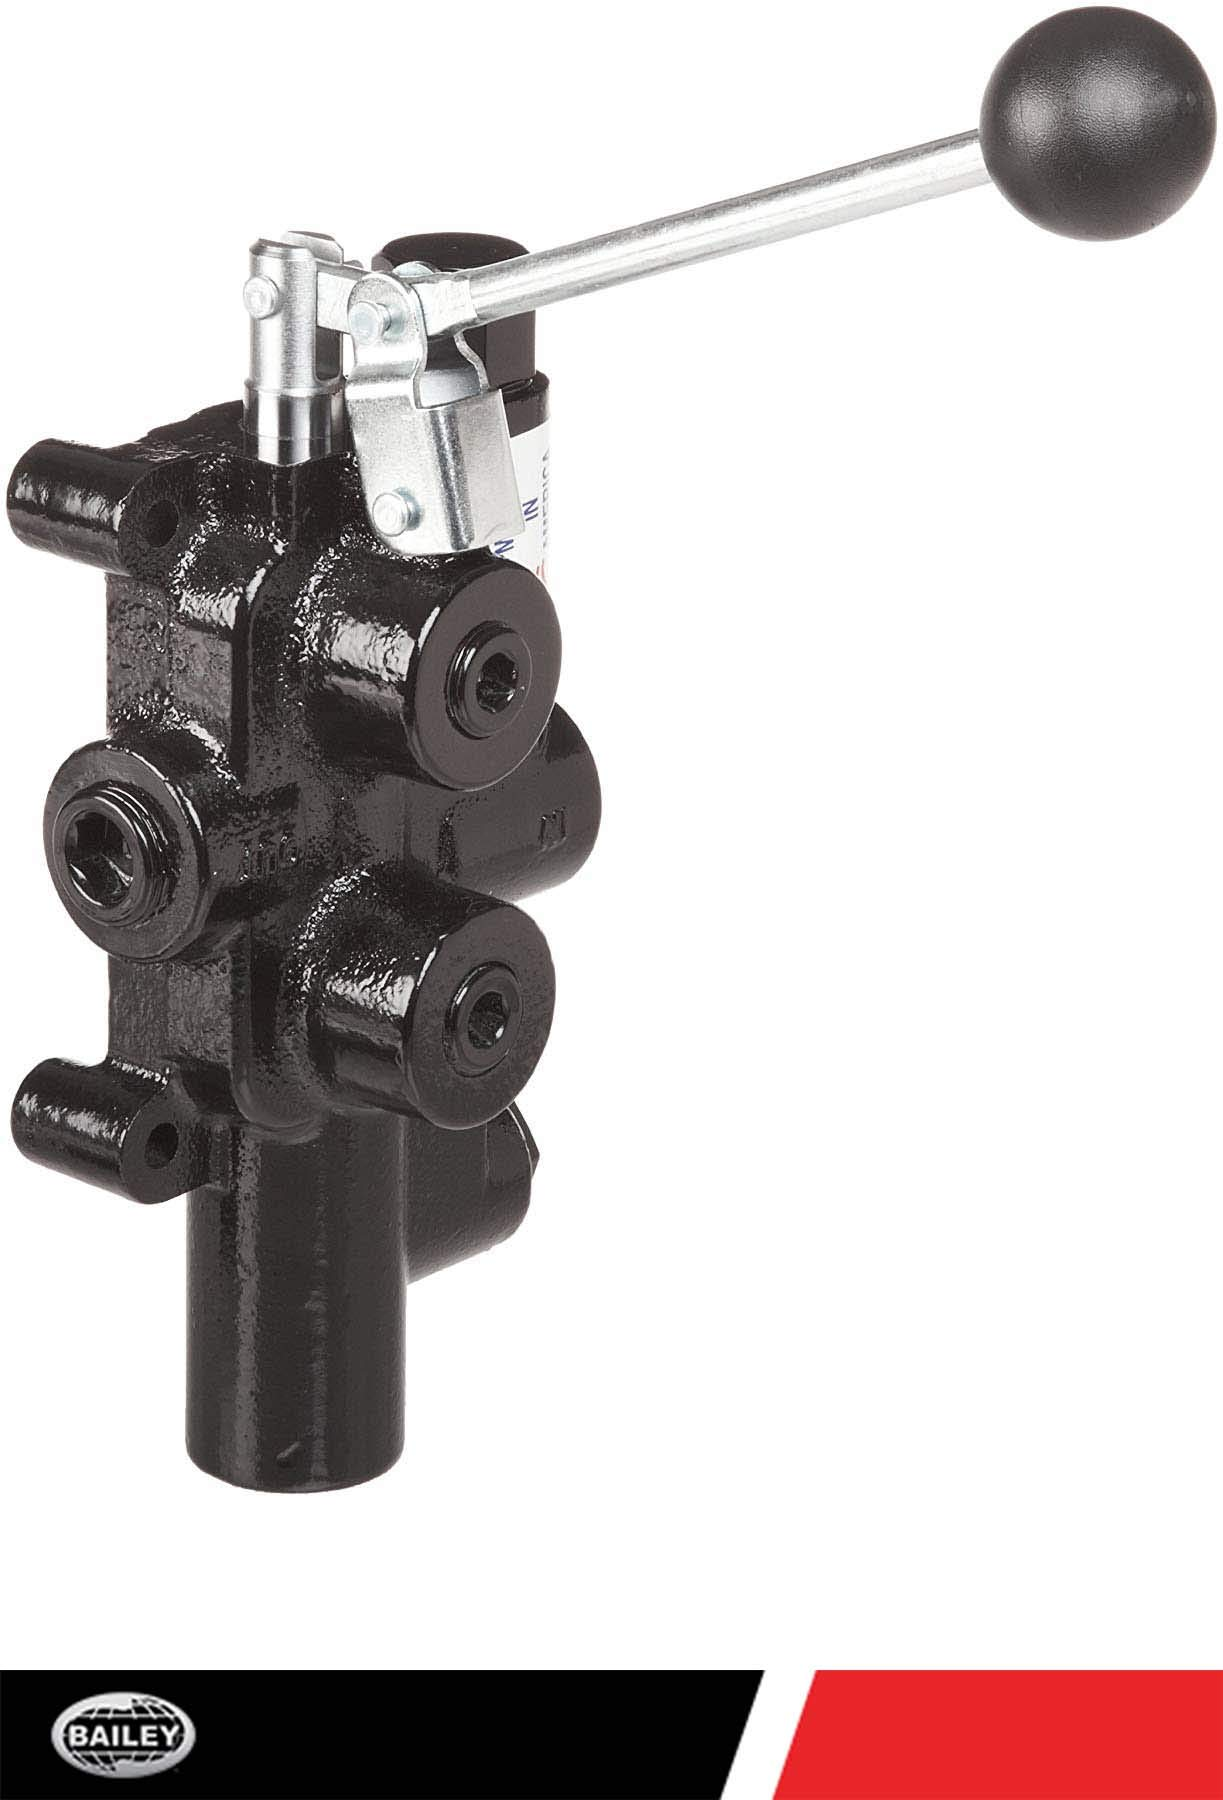 Prince LS-3030-1 Directional Control Valve, Logsplitter, 4 Ways, 3 Positions, Spring Center to Neutral, Cast Iron, 2750 psi, Lever Handle, 25 gpm, In/Out: 3/4 NPTF, Work: 1/2 NPTF